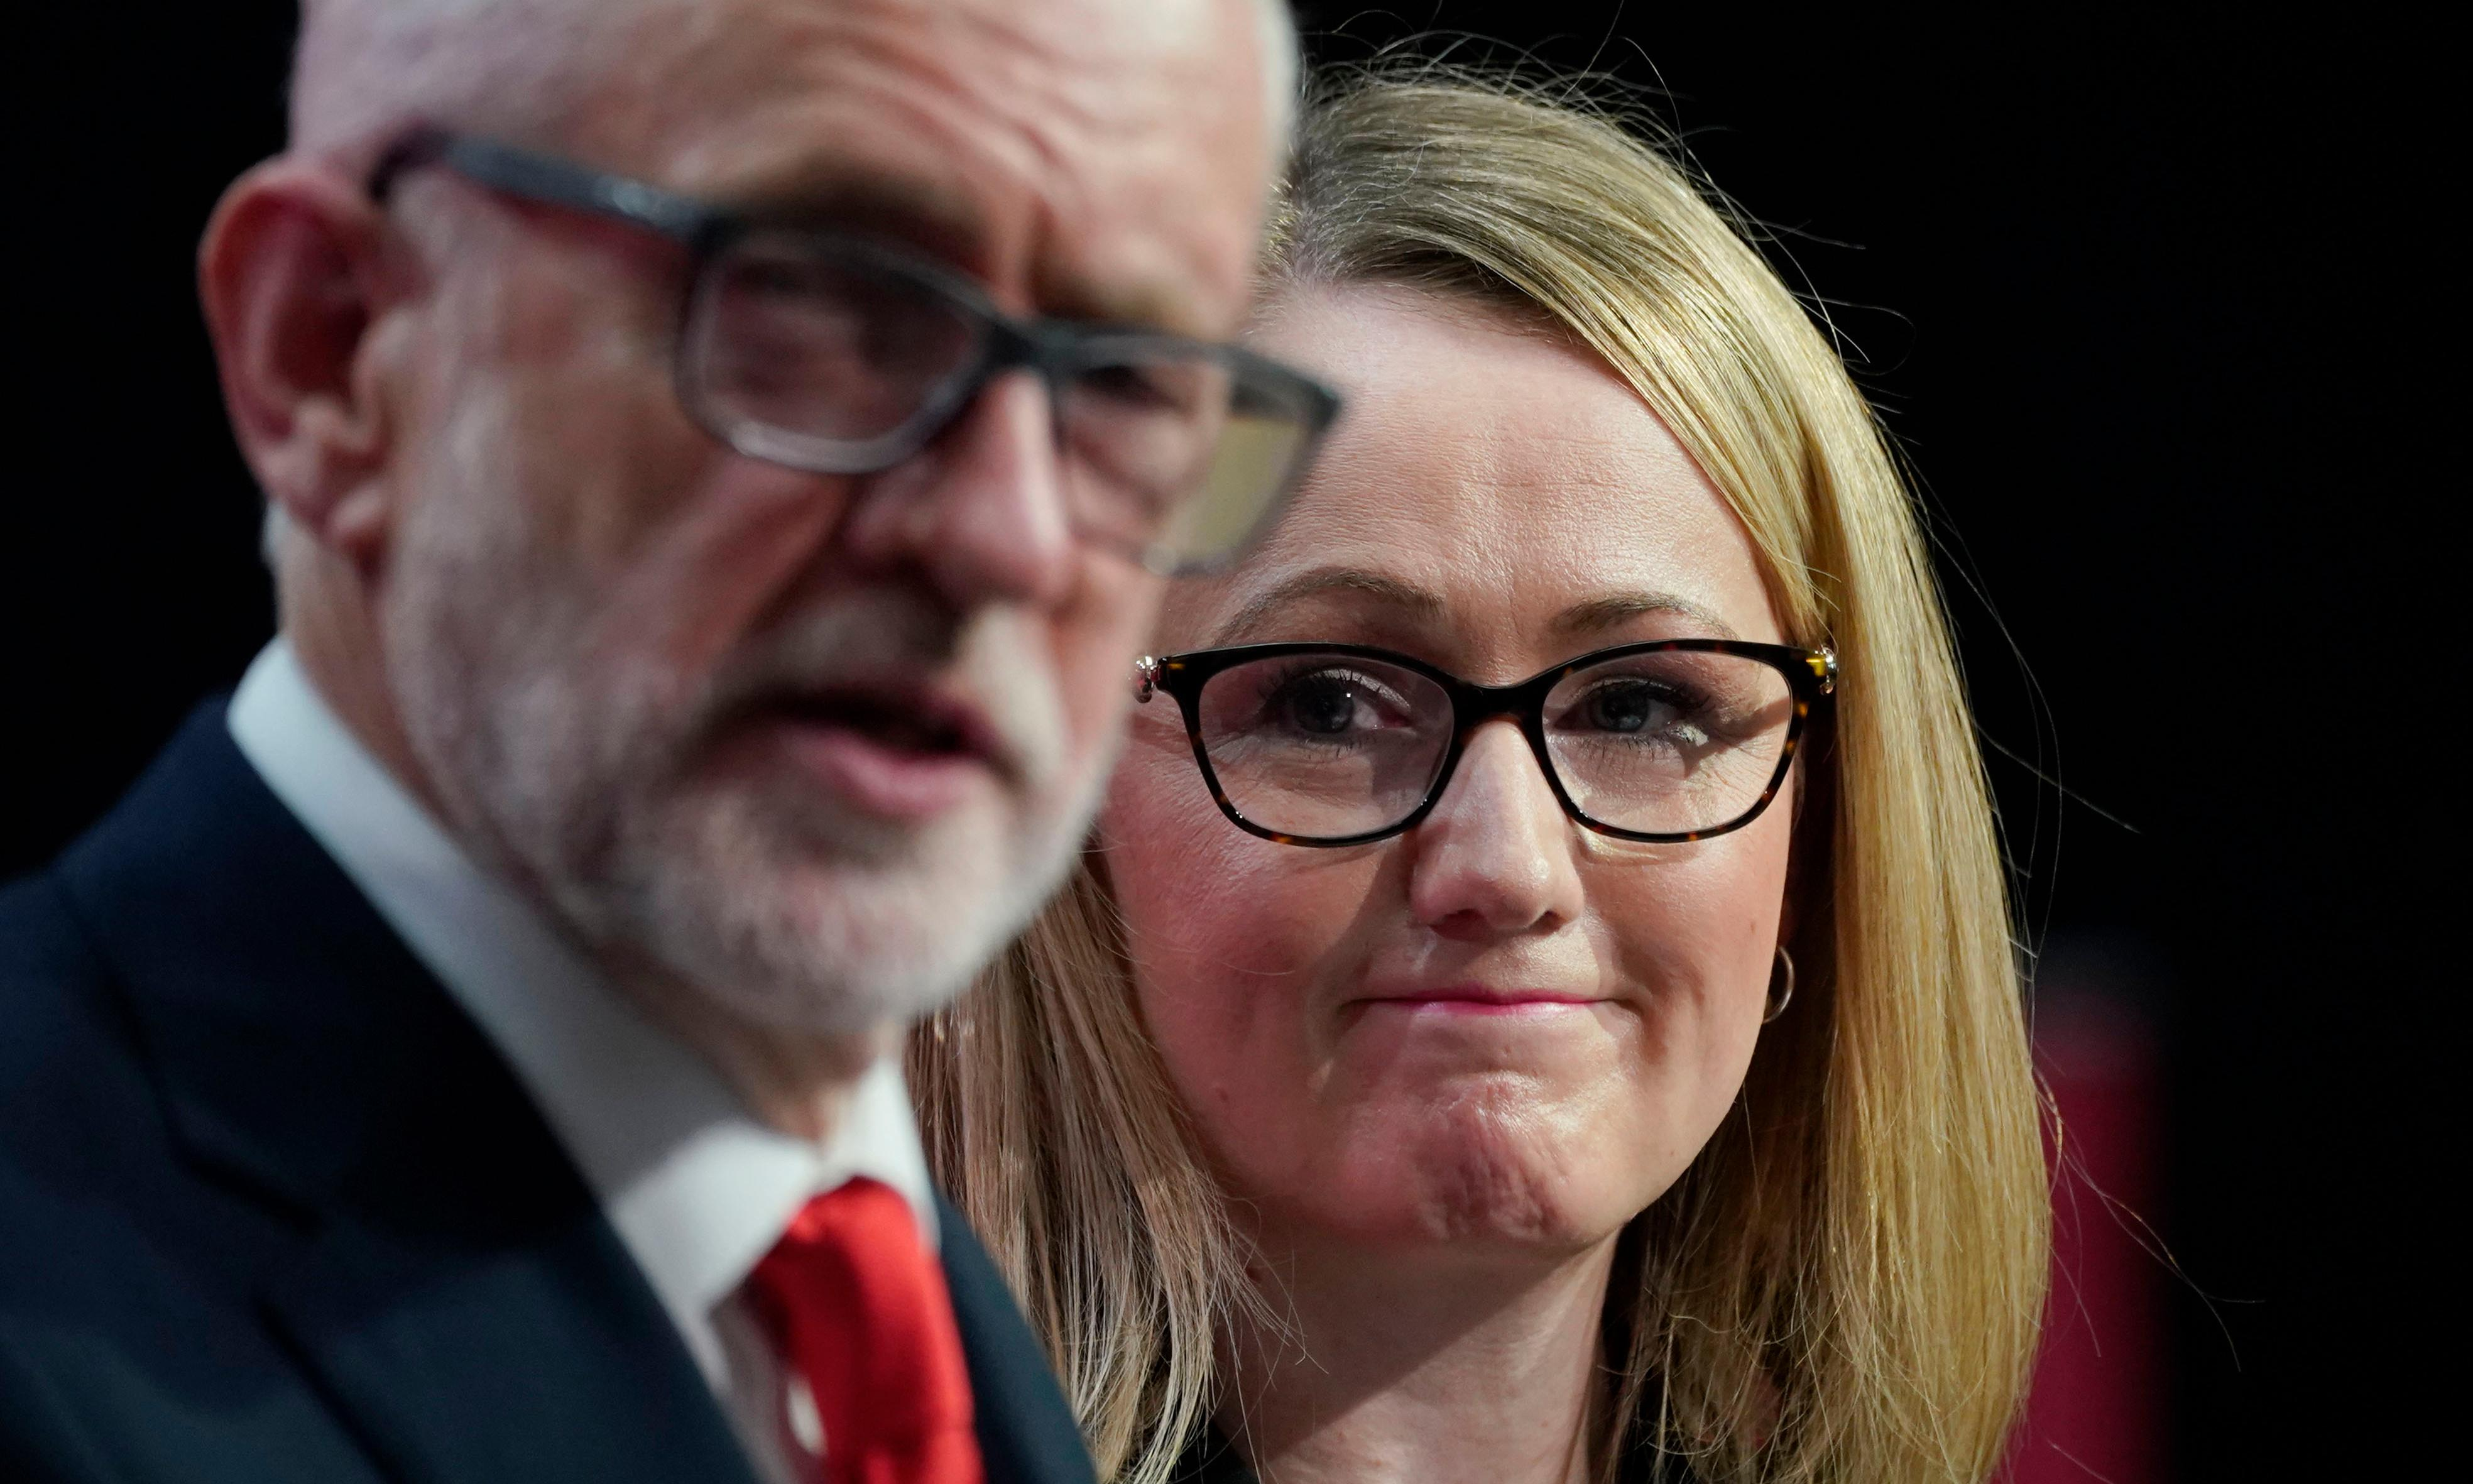 These are the questions Labour must answer if it is ever to win again